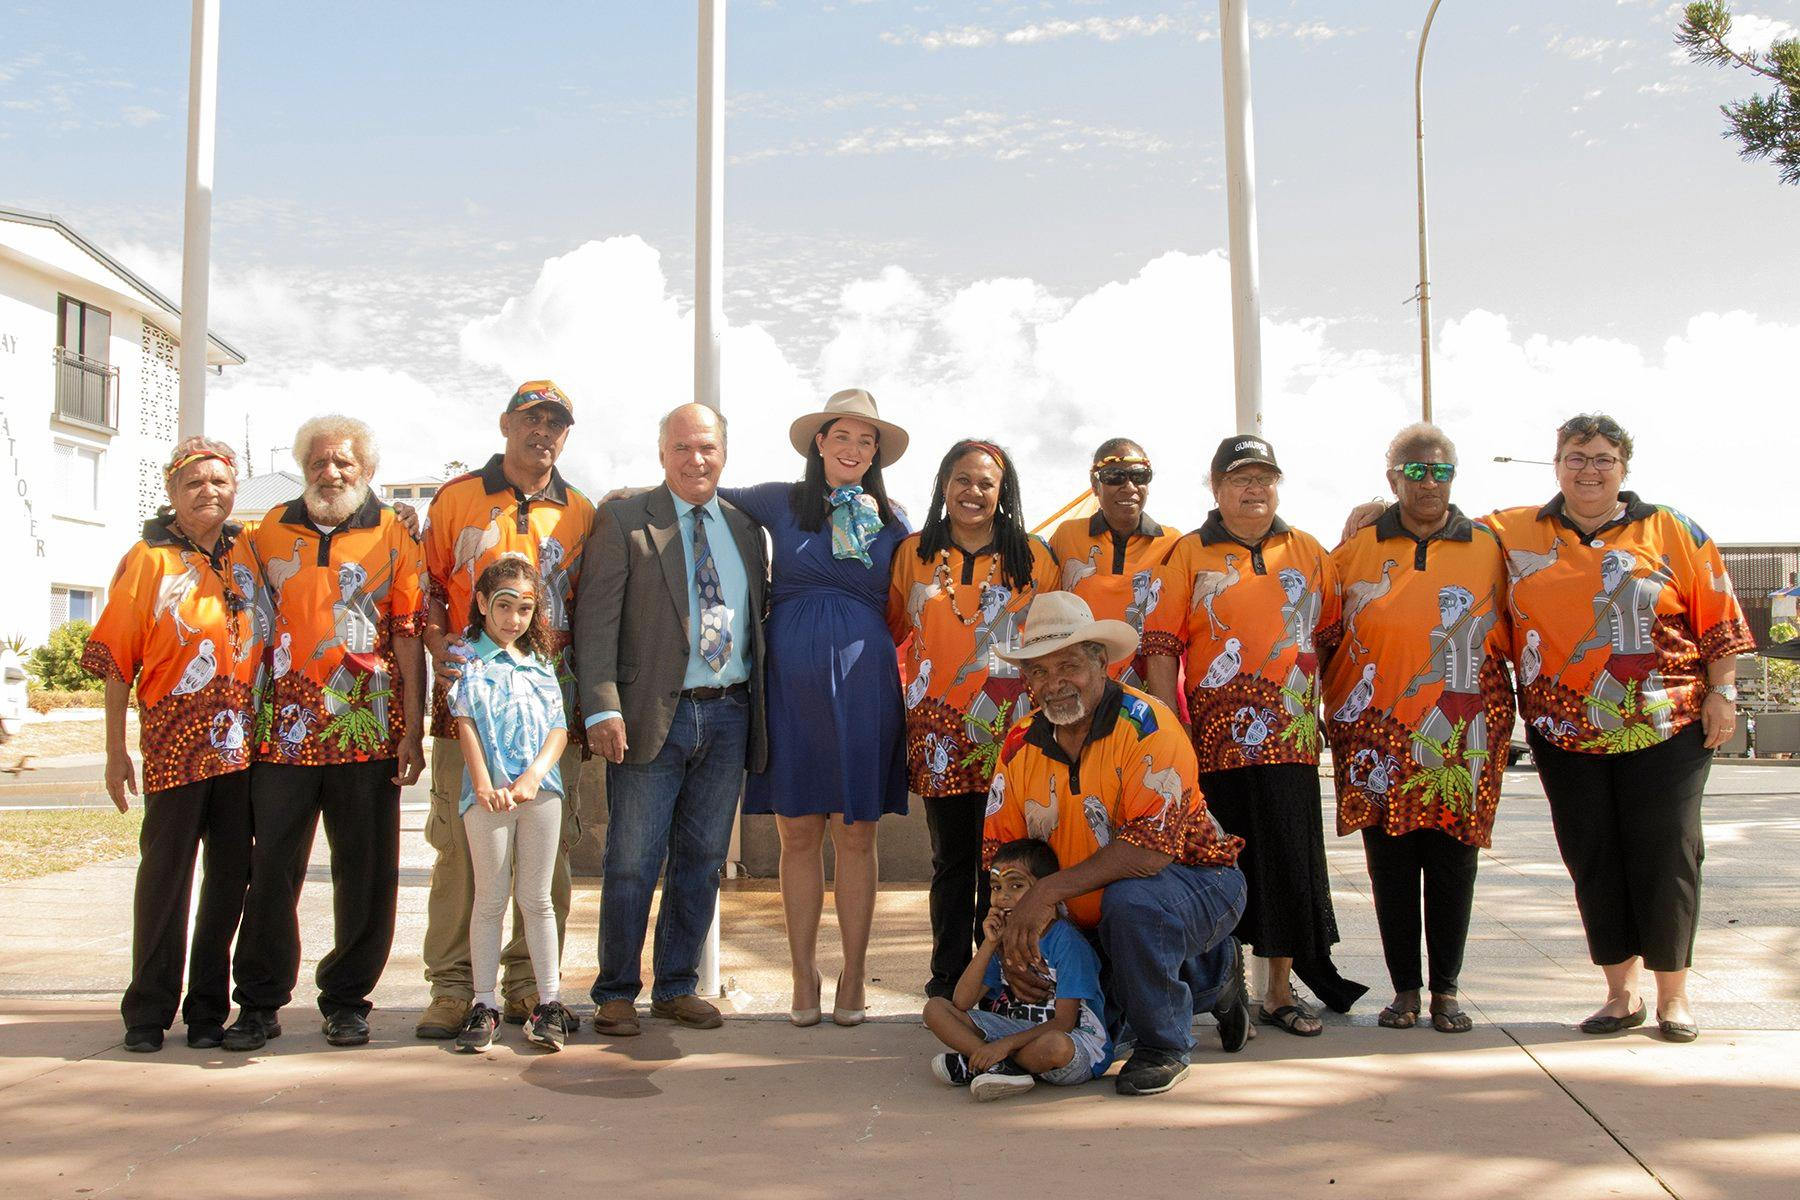 ARM IN ARM: Mayor Bill Ludwig and Member for Keppel Brittany Lauga join in last year's NAIDOC Week celebrations in Livingstone with members of the Capricorn Coast Indigenous Inc. Mob.